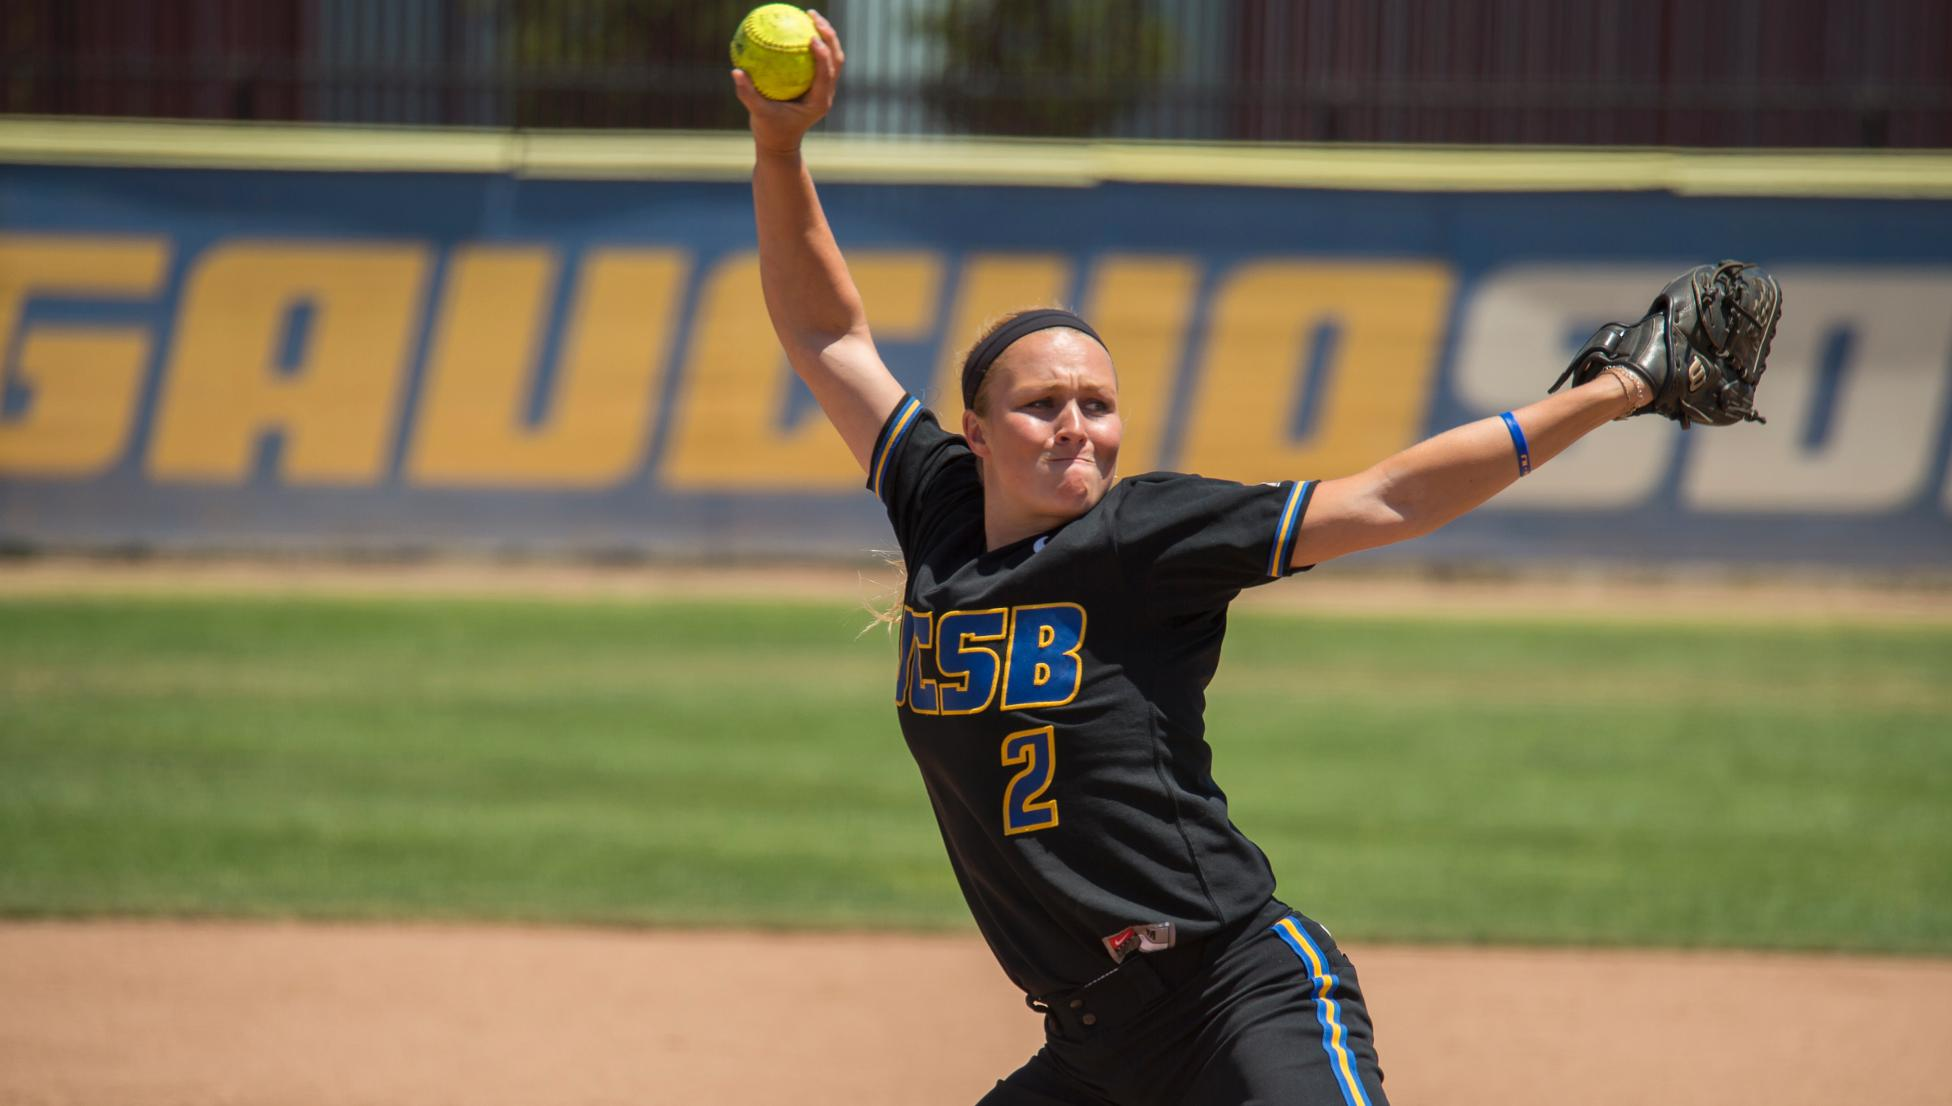 Ludlow Records First No-Hitter in 4-0 Win Over Georgia Tech, Gauchos Fall to South Carolina 6-1